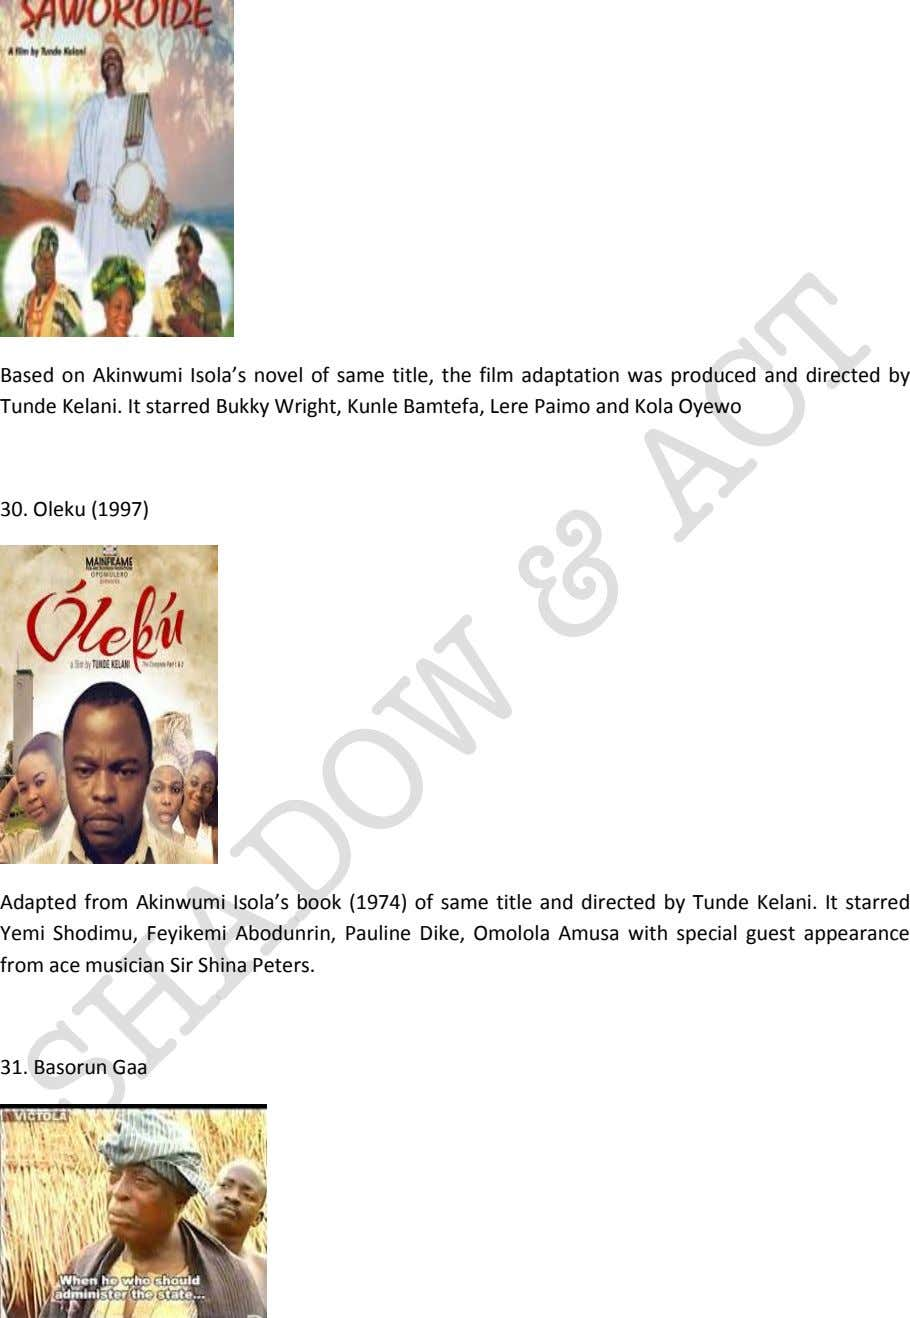 Based on Akinwumi Isola's novel of same title, the film adaptation was produced and directed